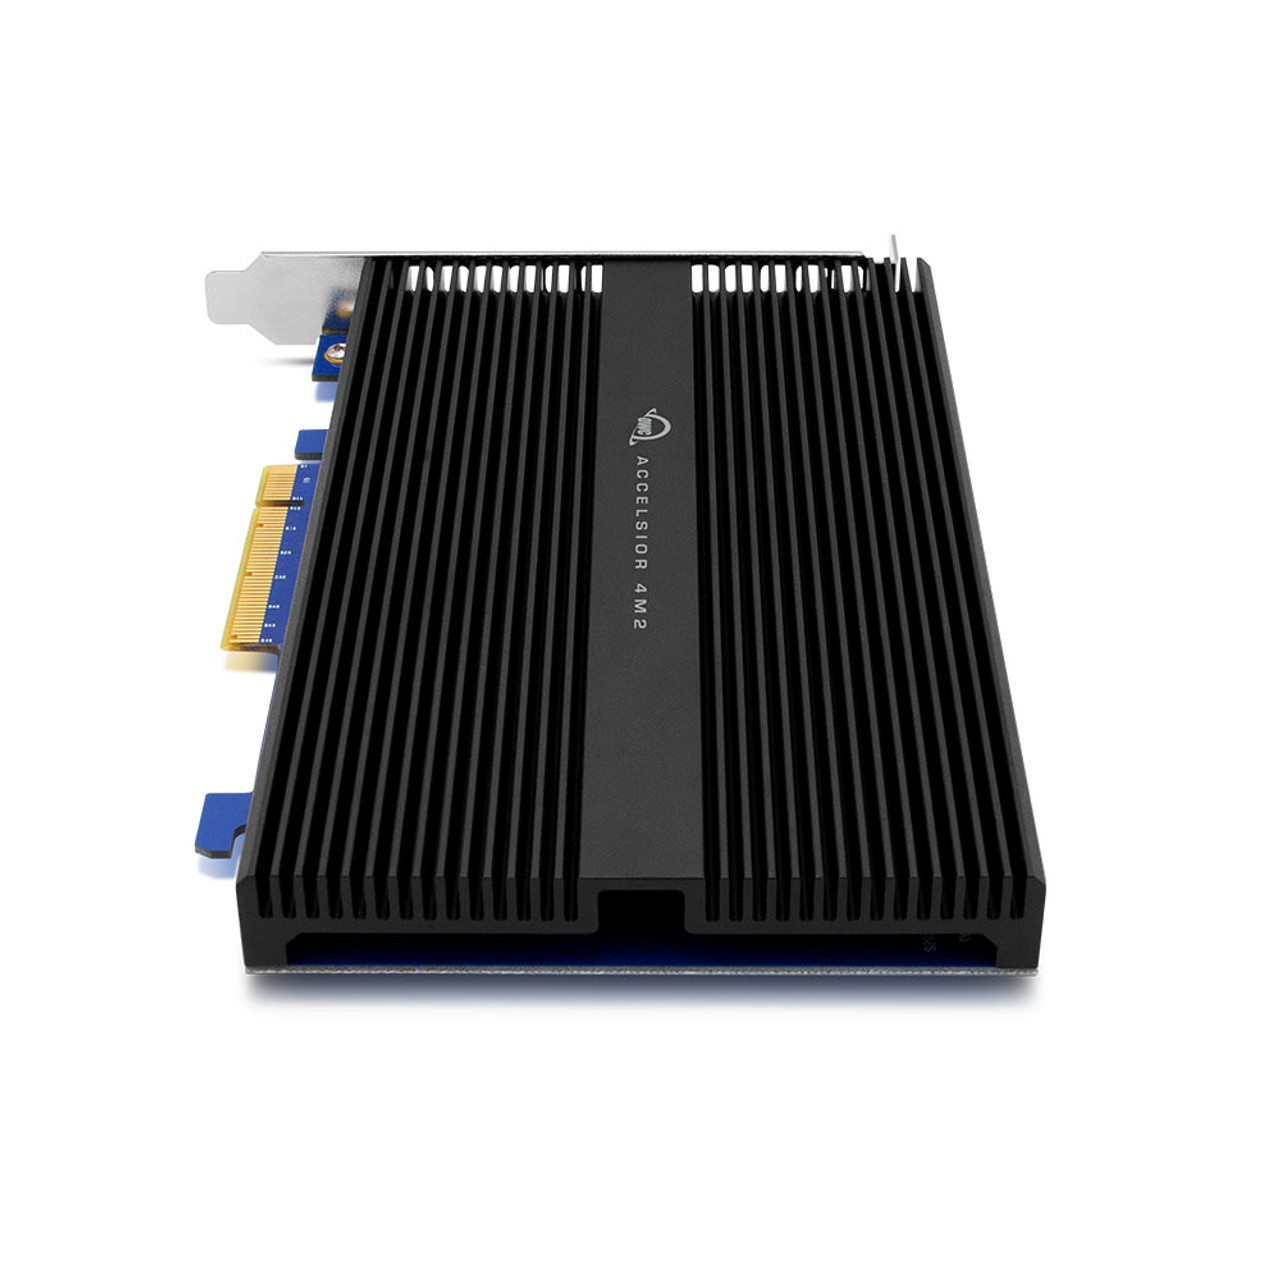 OWC 2.0TB Accelsior 4M2 High-Performance PCIe M.2 NVMe SSD Adapter Card